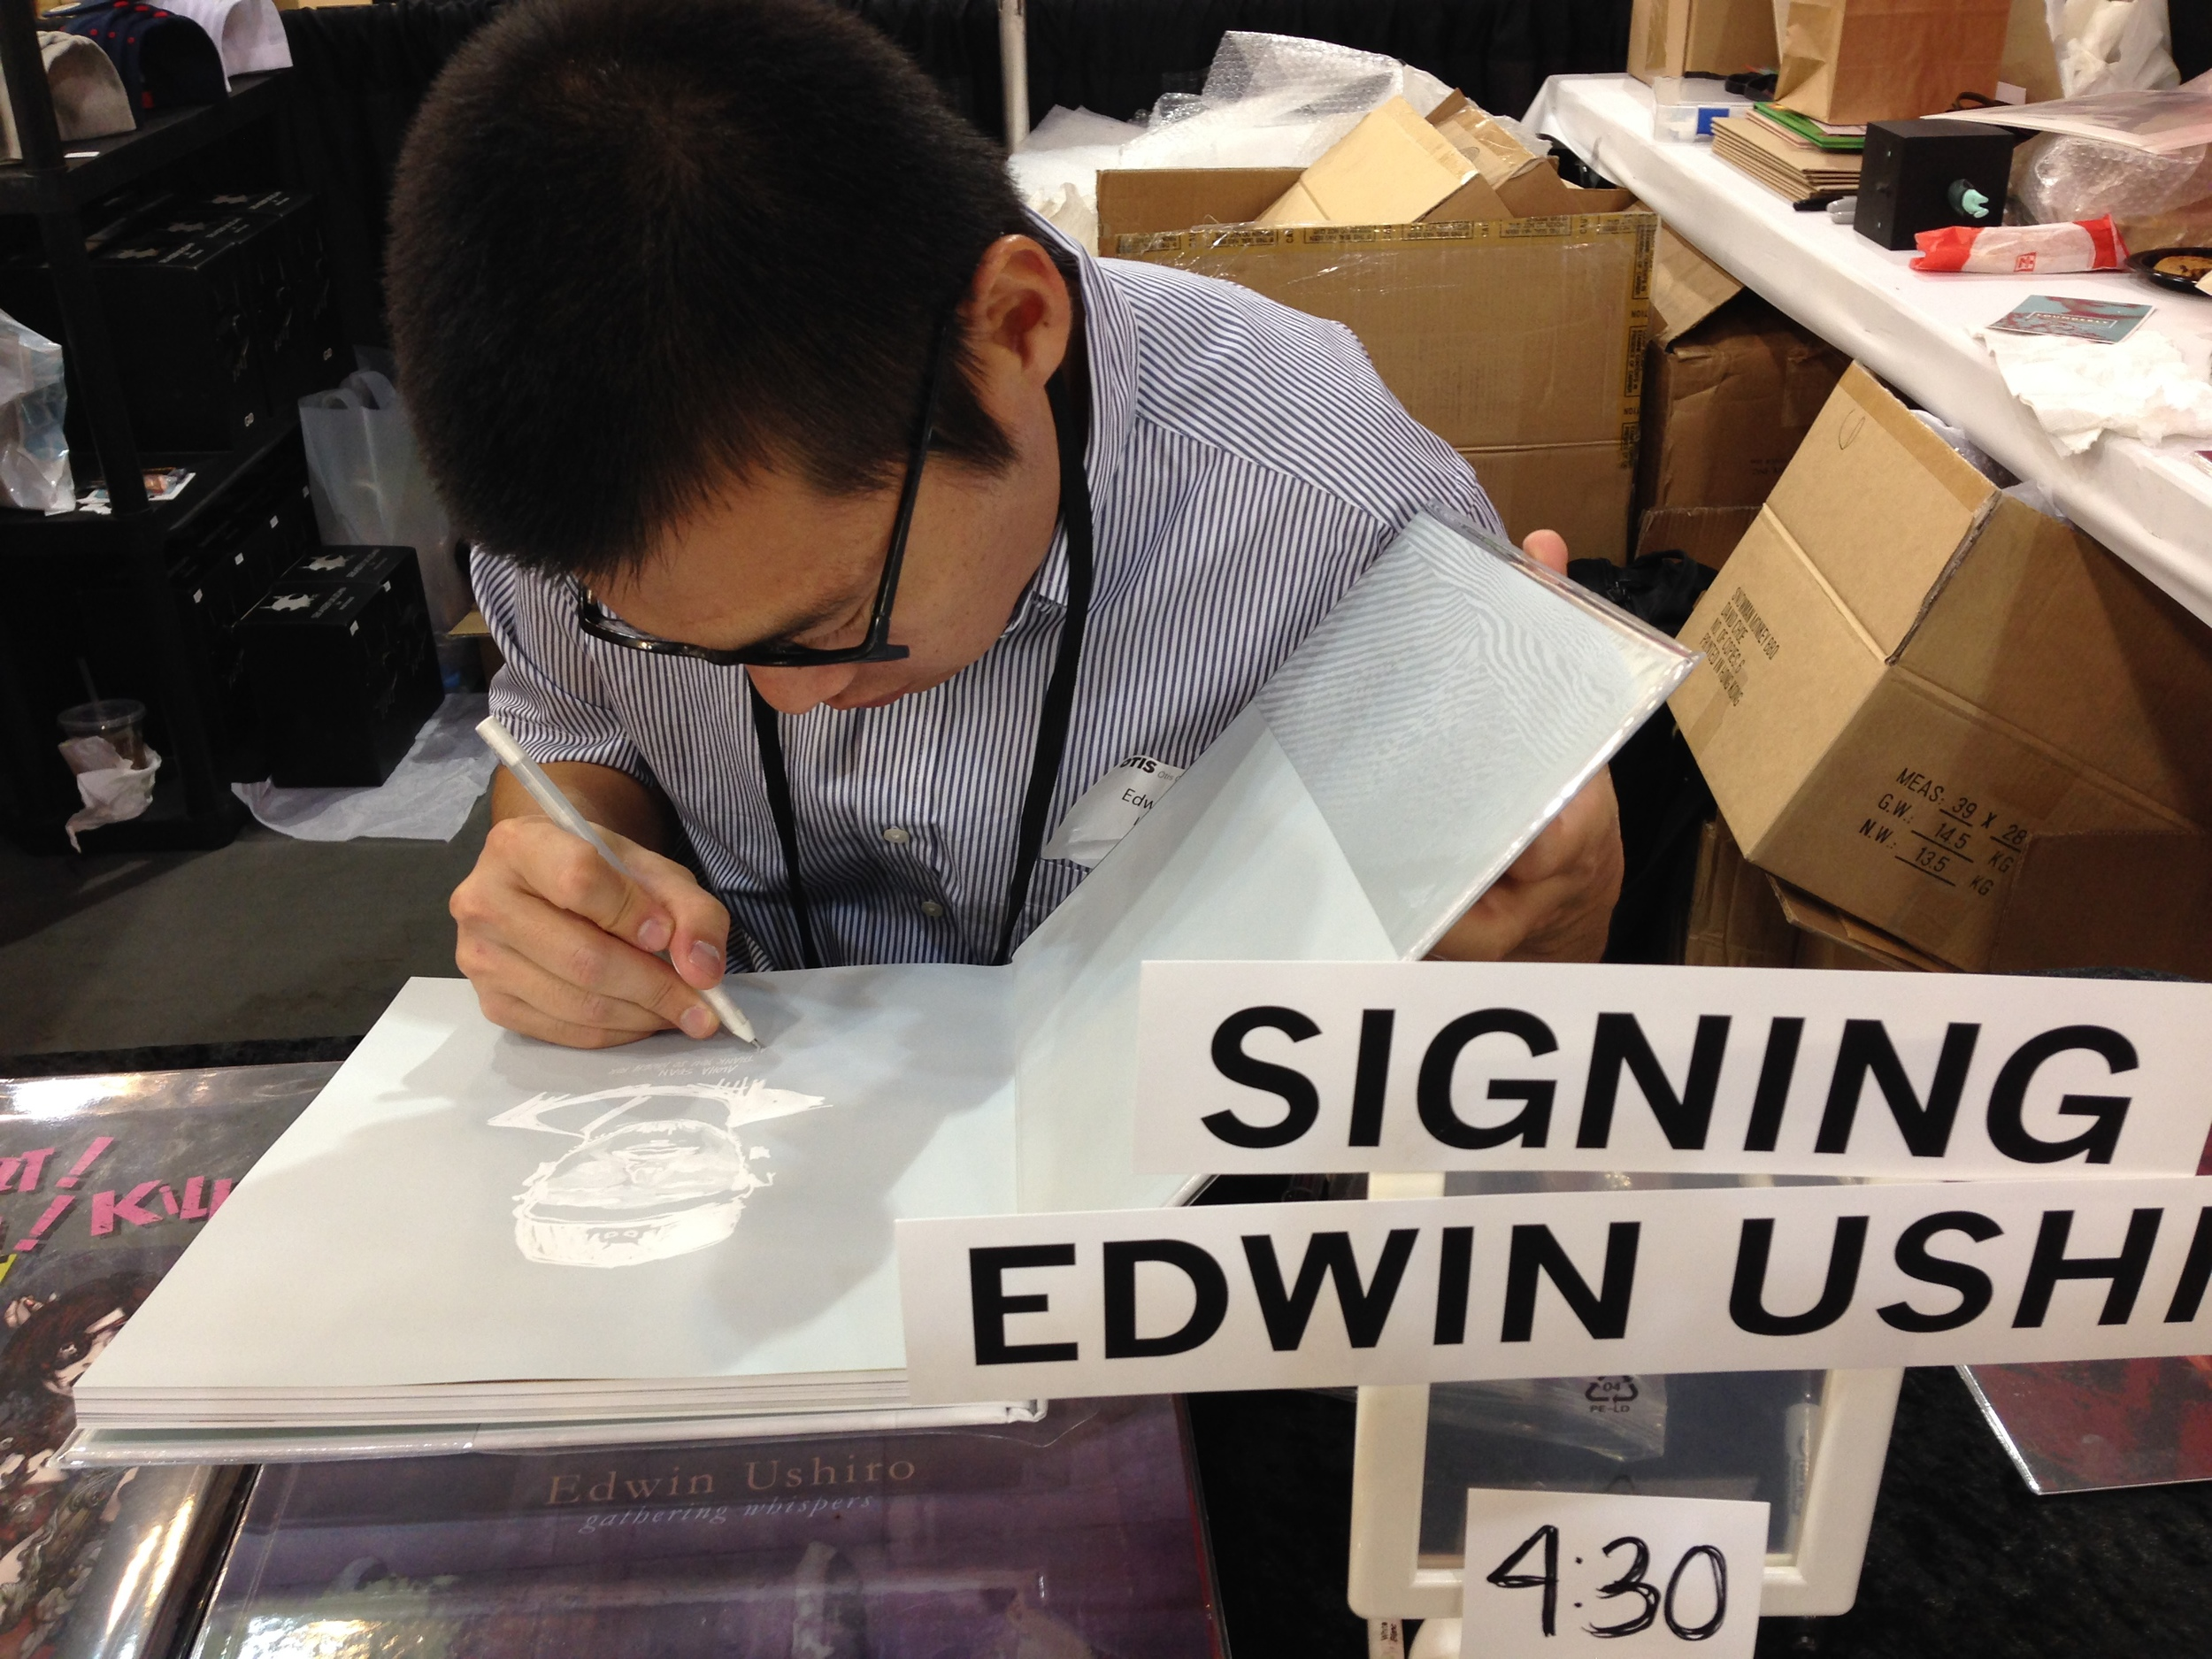 Book signing by artist friend Edwin Ushiro